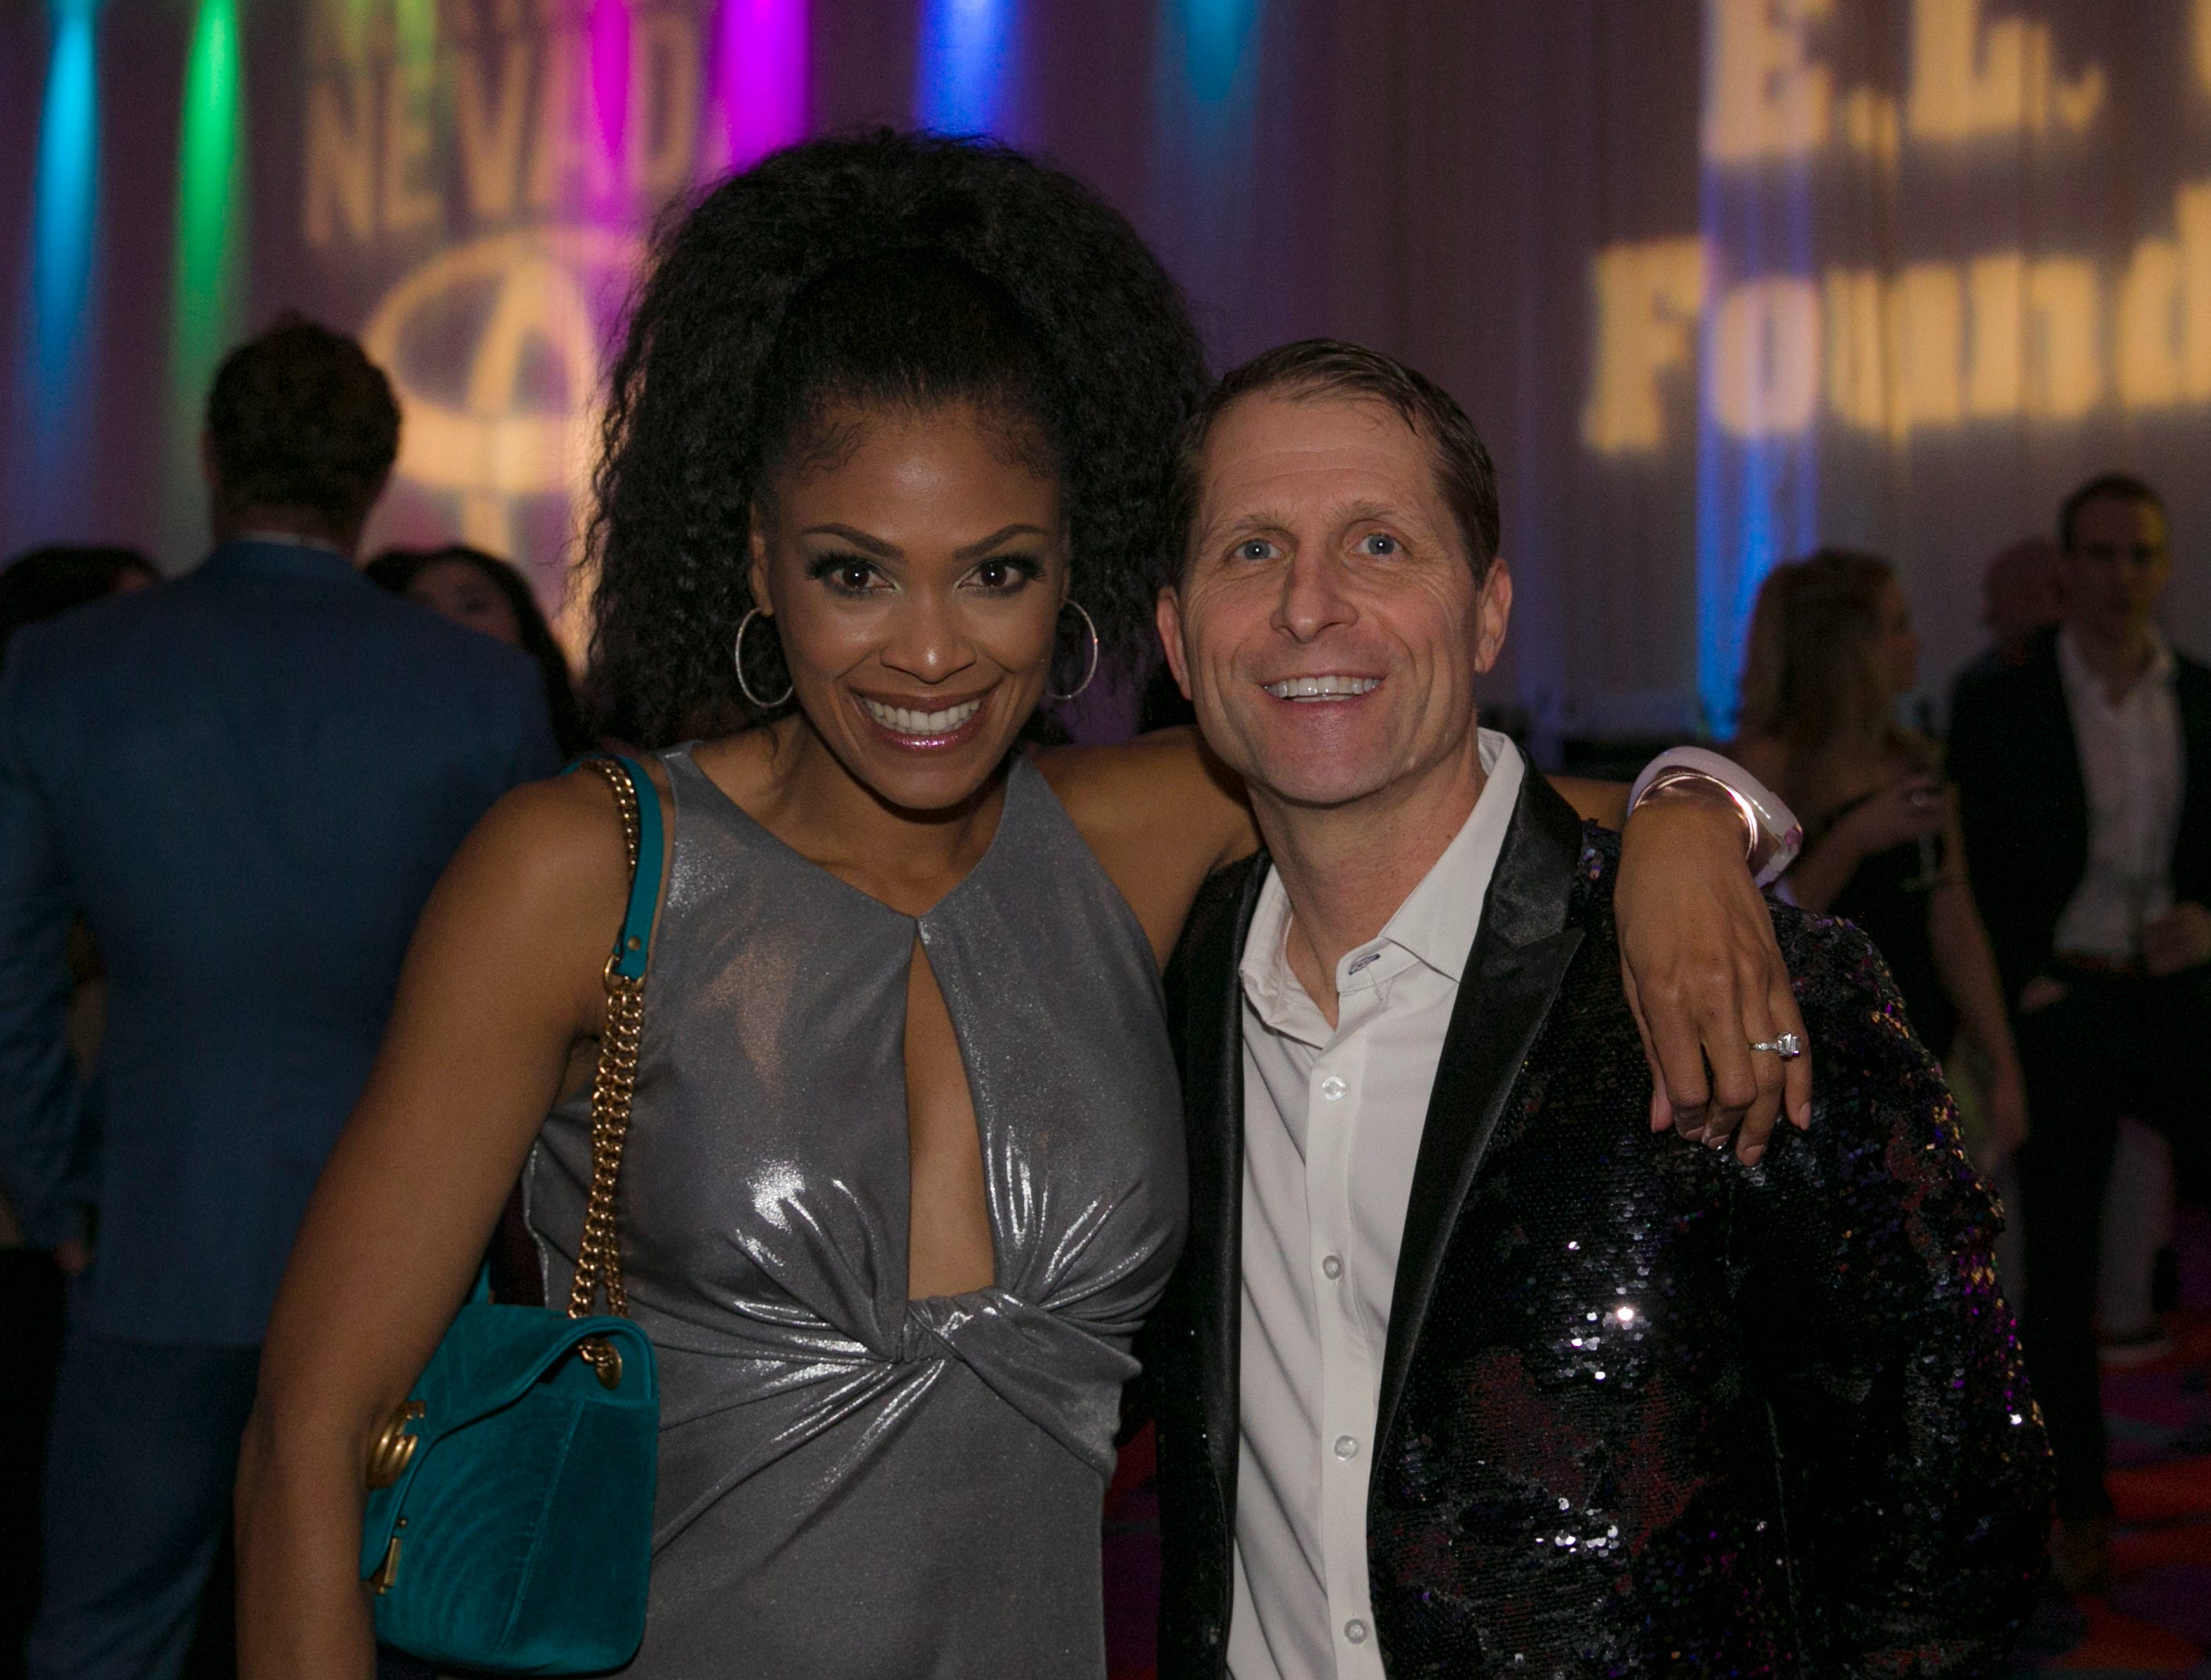 Nevada head basketball coach Eric Musselman and wife Danyelle during the 10th Annual Blue Tie Ball at the Peppermill Resort Spa Casino in Reno, NV on Friday night, Feb. 1, 2019.